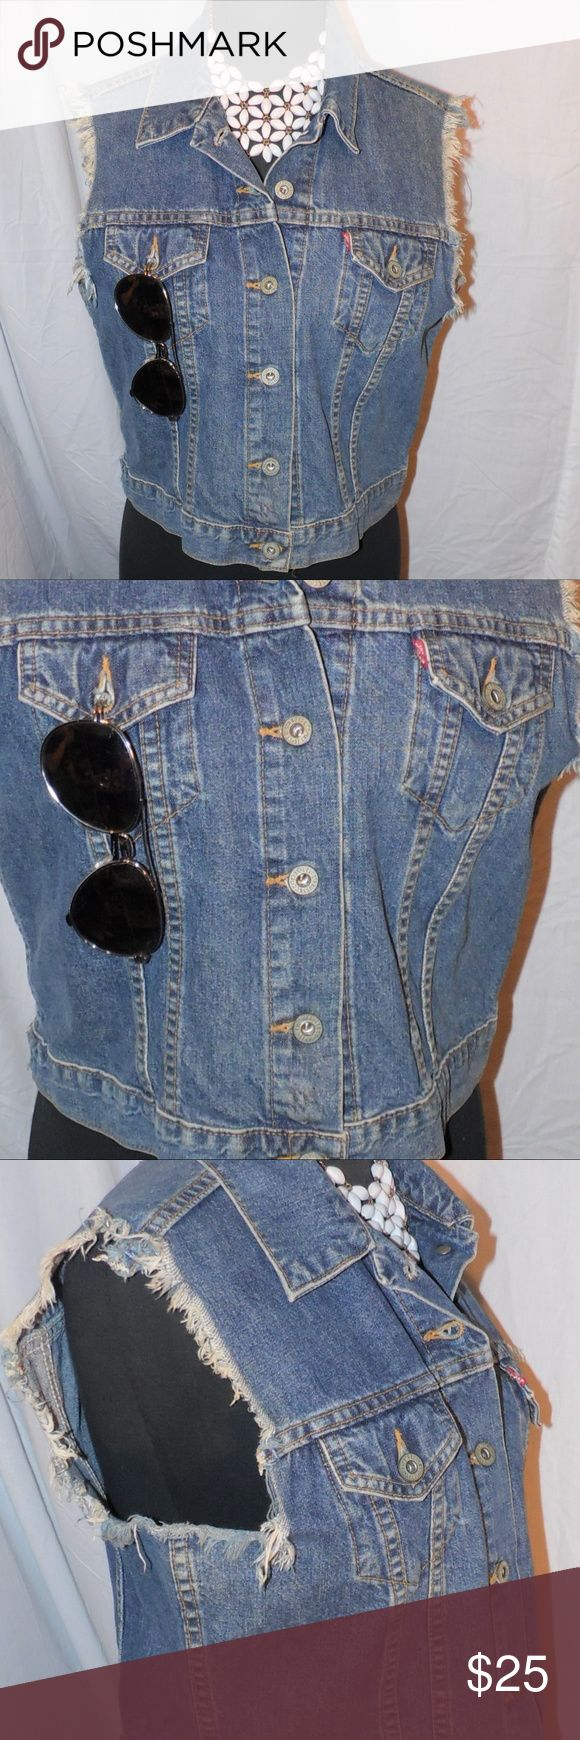 Levi Strauss & co. Jean Vest size L Levi Strauss & co. Jean Vest size L All Items are inspected and pictured before shipment in order to ensure top quality!! Bundle and Save!! Happy Poshing!!! **Accessories not included**  Brought to you by: Ari's Chic Dowri ;) Levi Strauss Jackets & Coats Vests